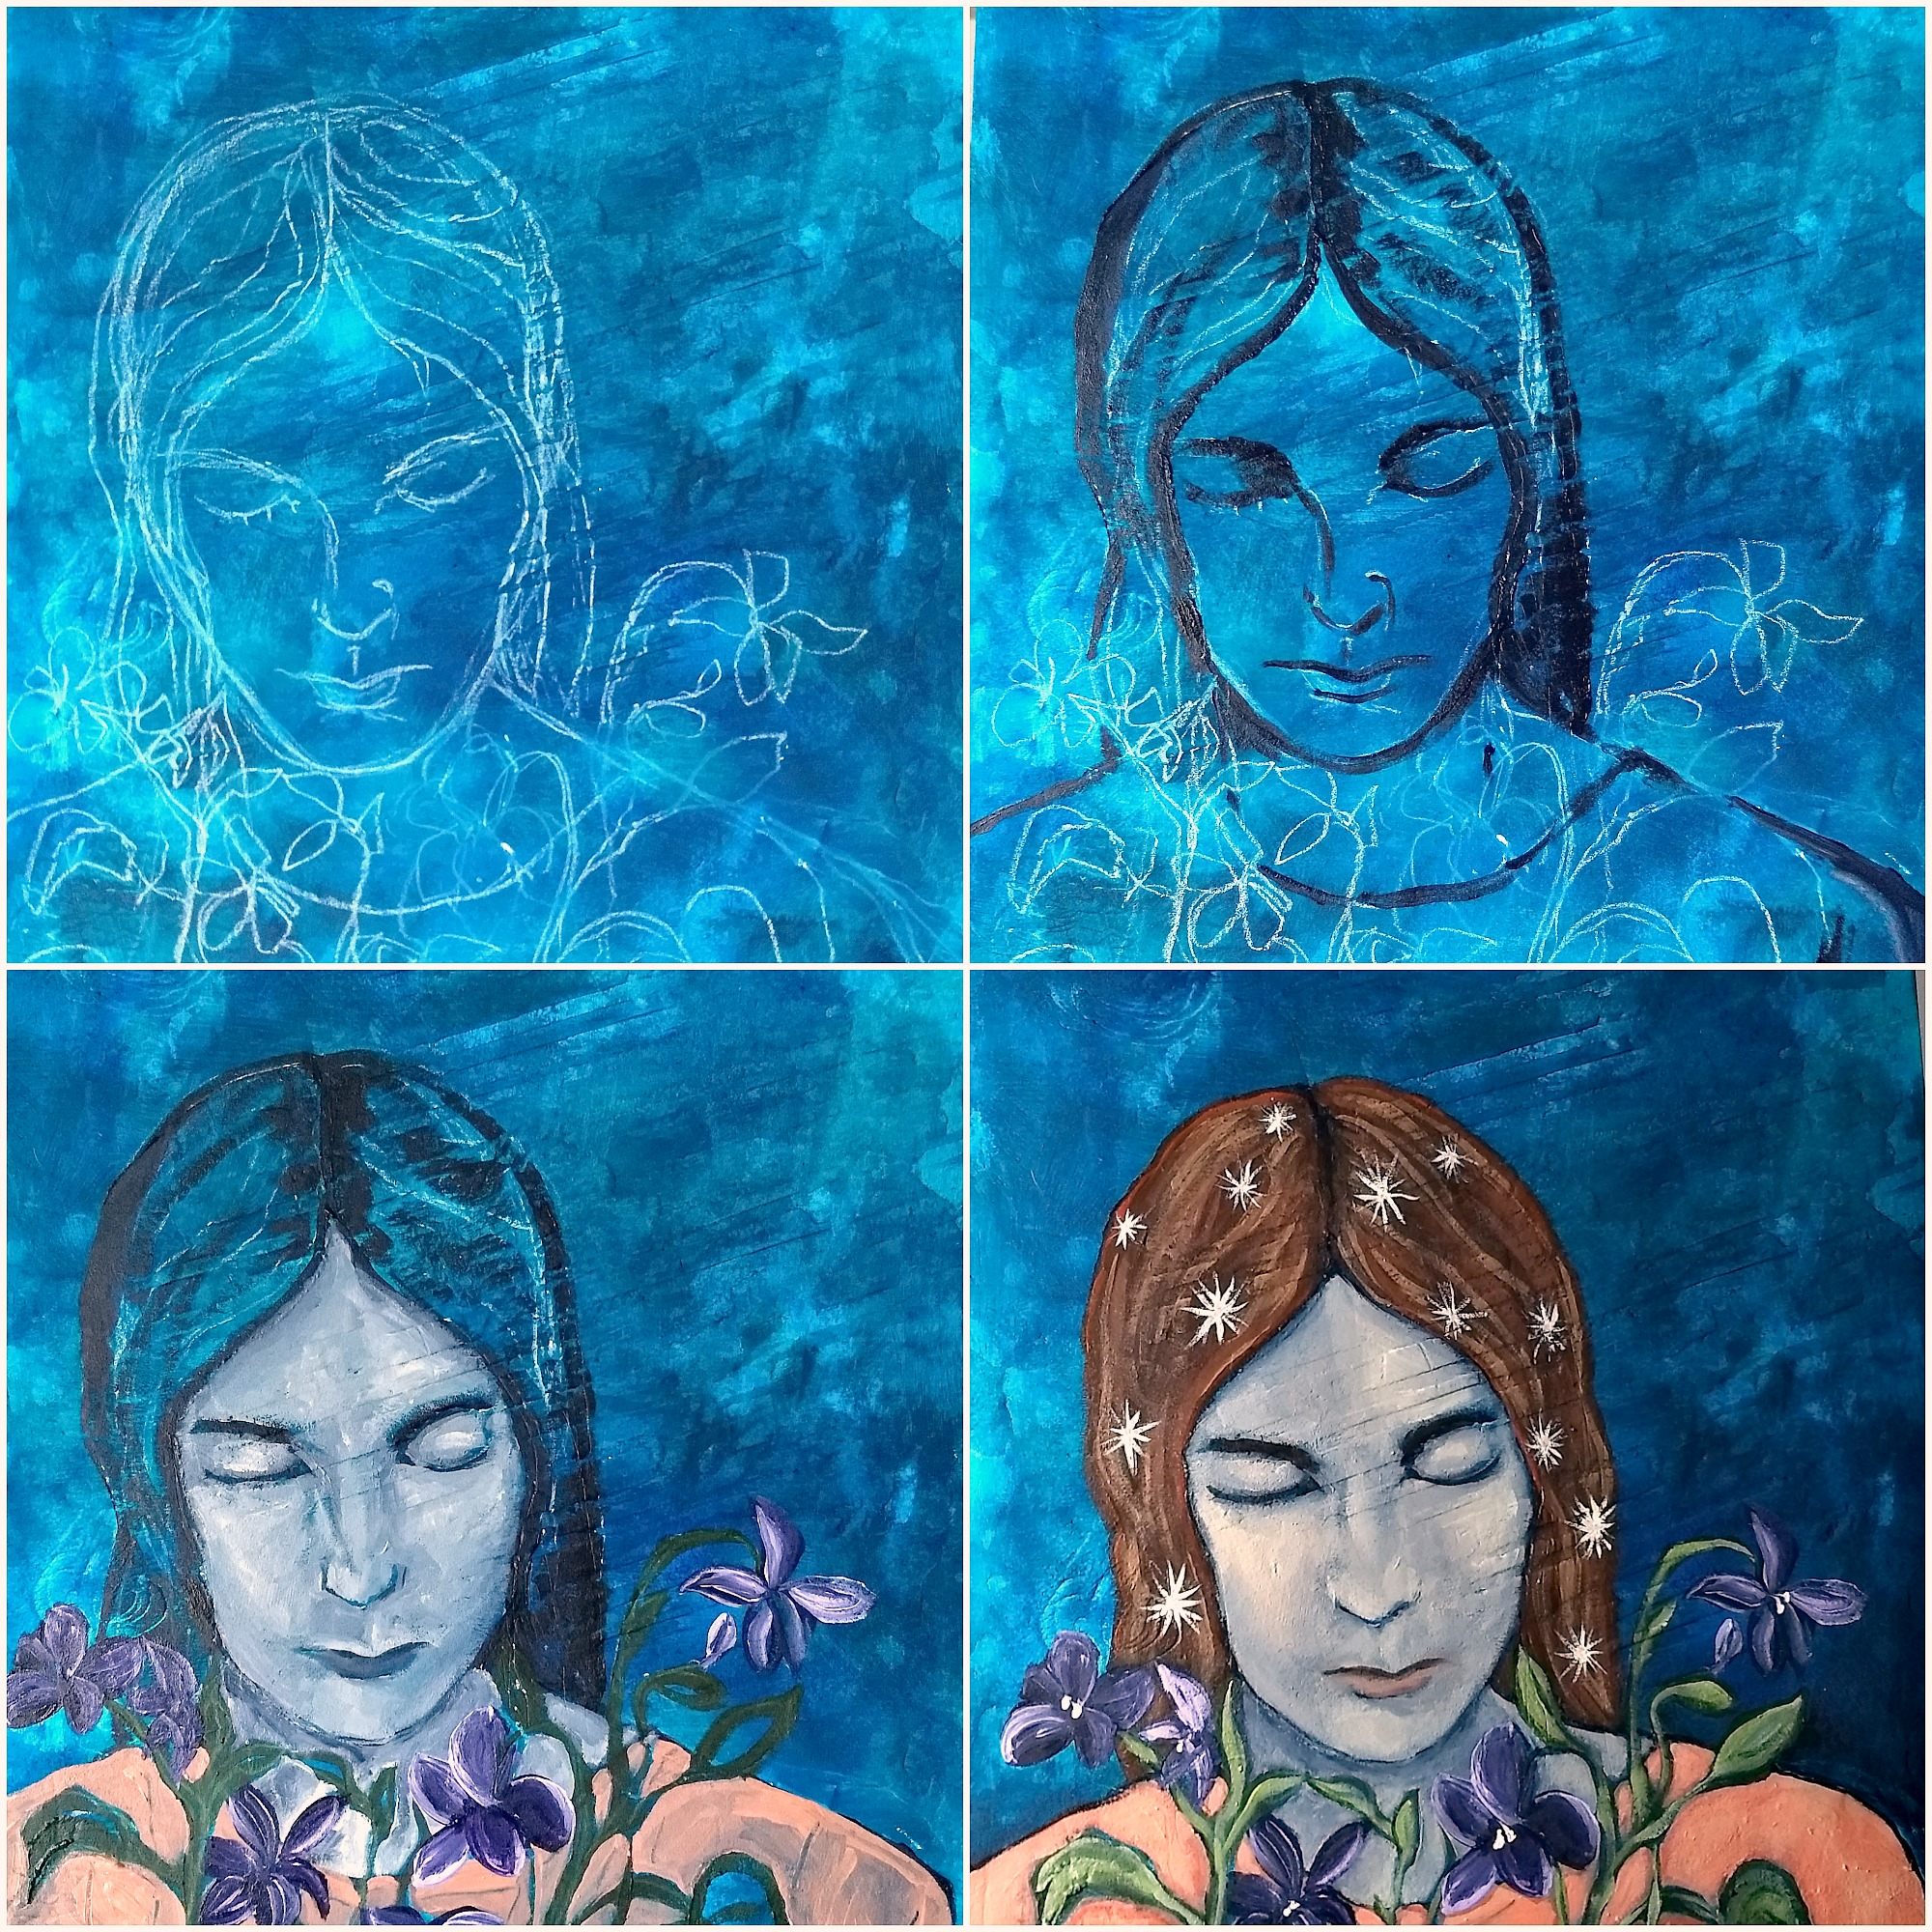 mixed-media painting on panel, in-process, by Hali Karla